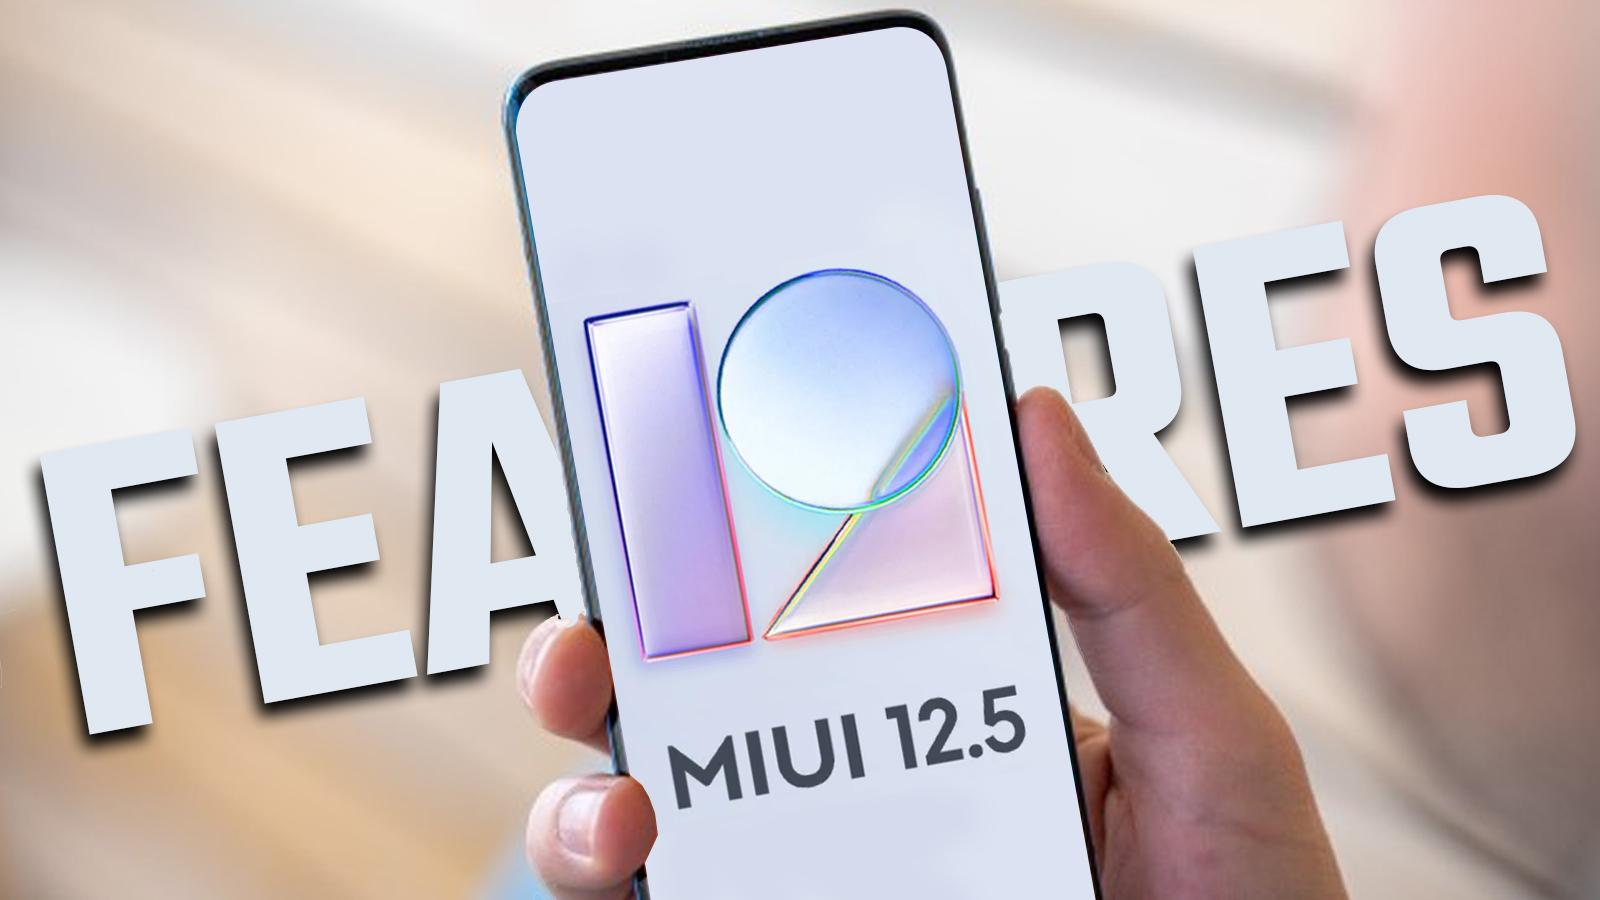 MIUI 12.5 Features, Release Date, Tips and Tricks